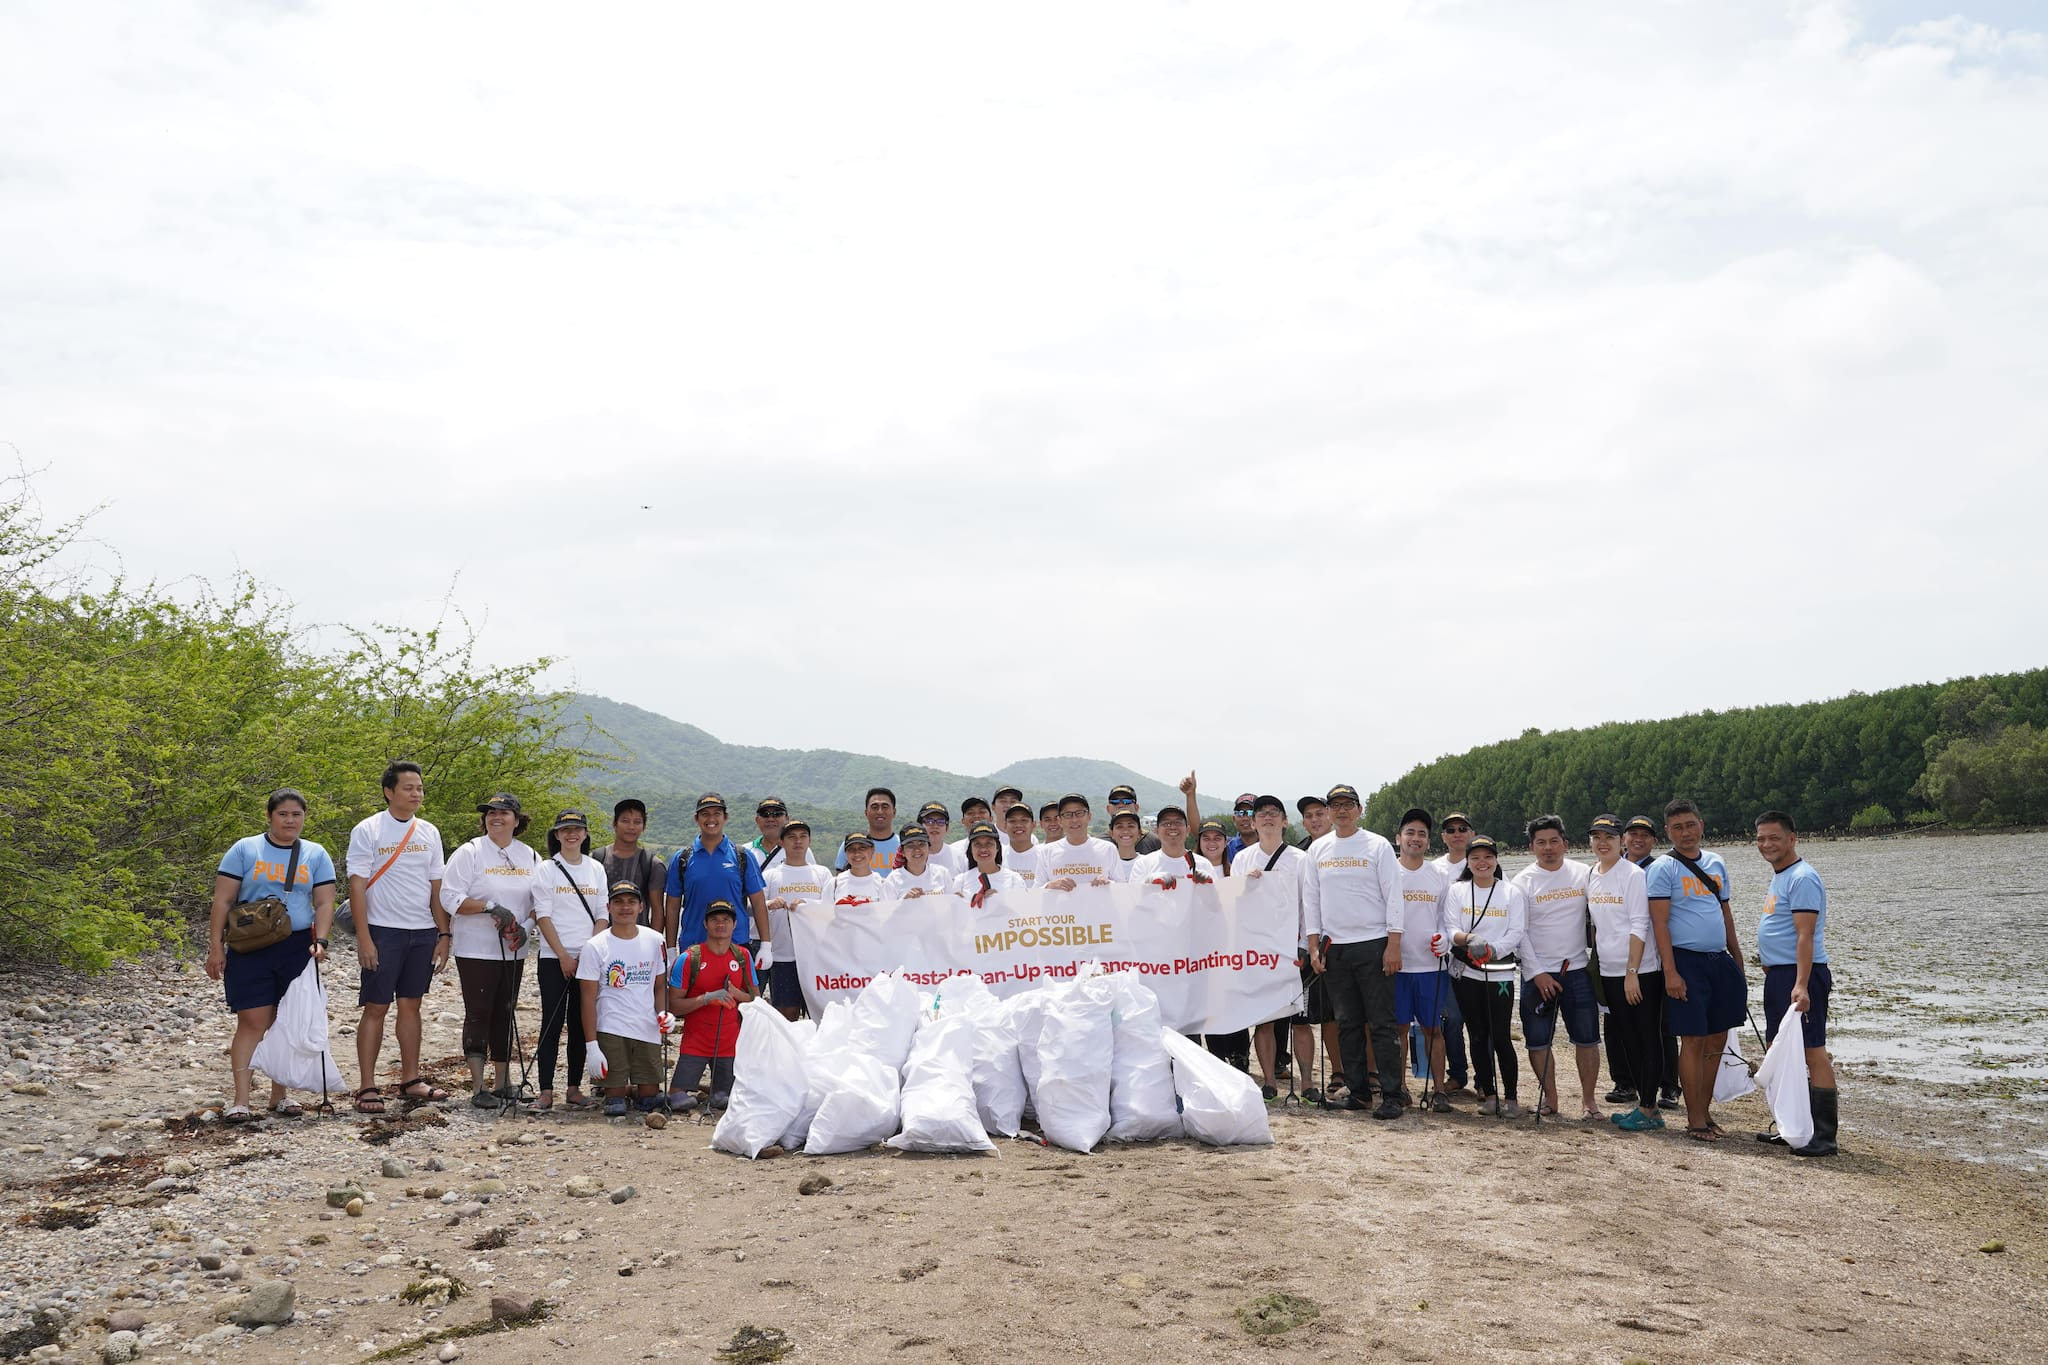 Toyota PH Starts Impossible with Simultaneous National Coastal Clean-Up, Mangrove Planting